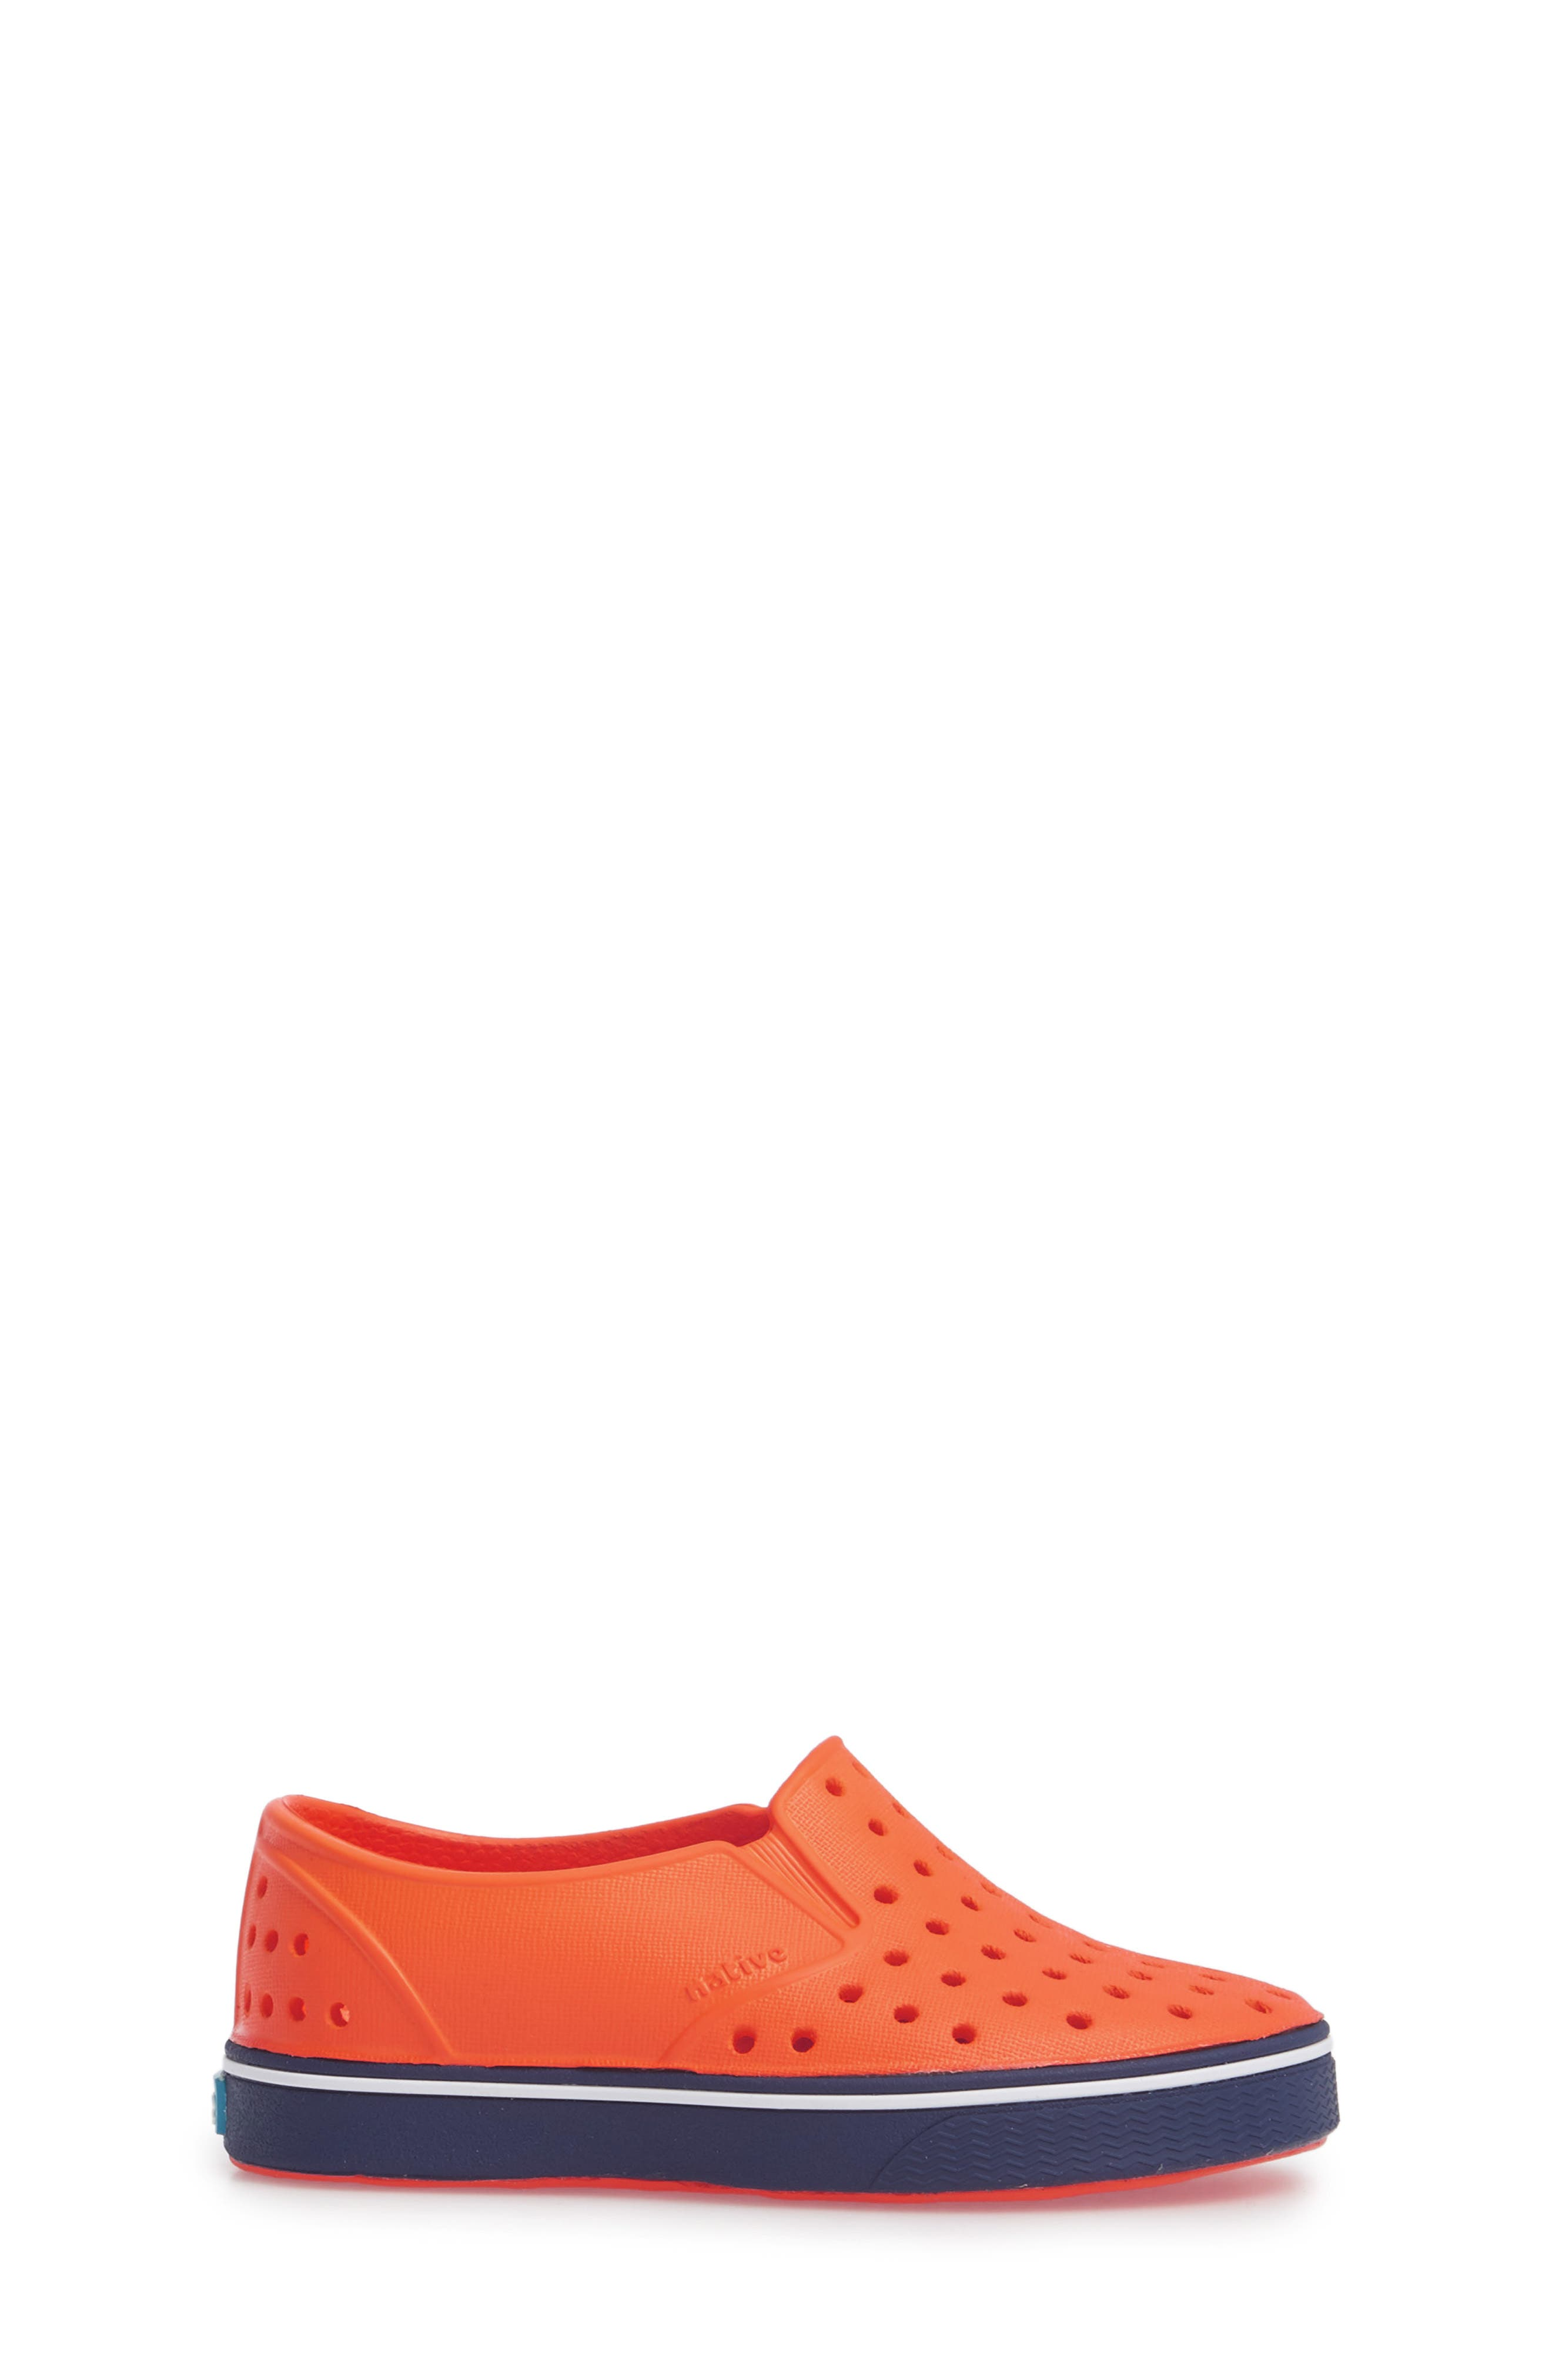 Miles Water Friendly Slip-On Sneaker,                             Alternate thumbnail 3, color,                             SUNSET ORANGE/ REGATTA BLUE